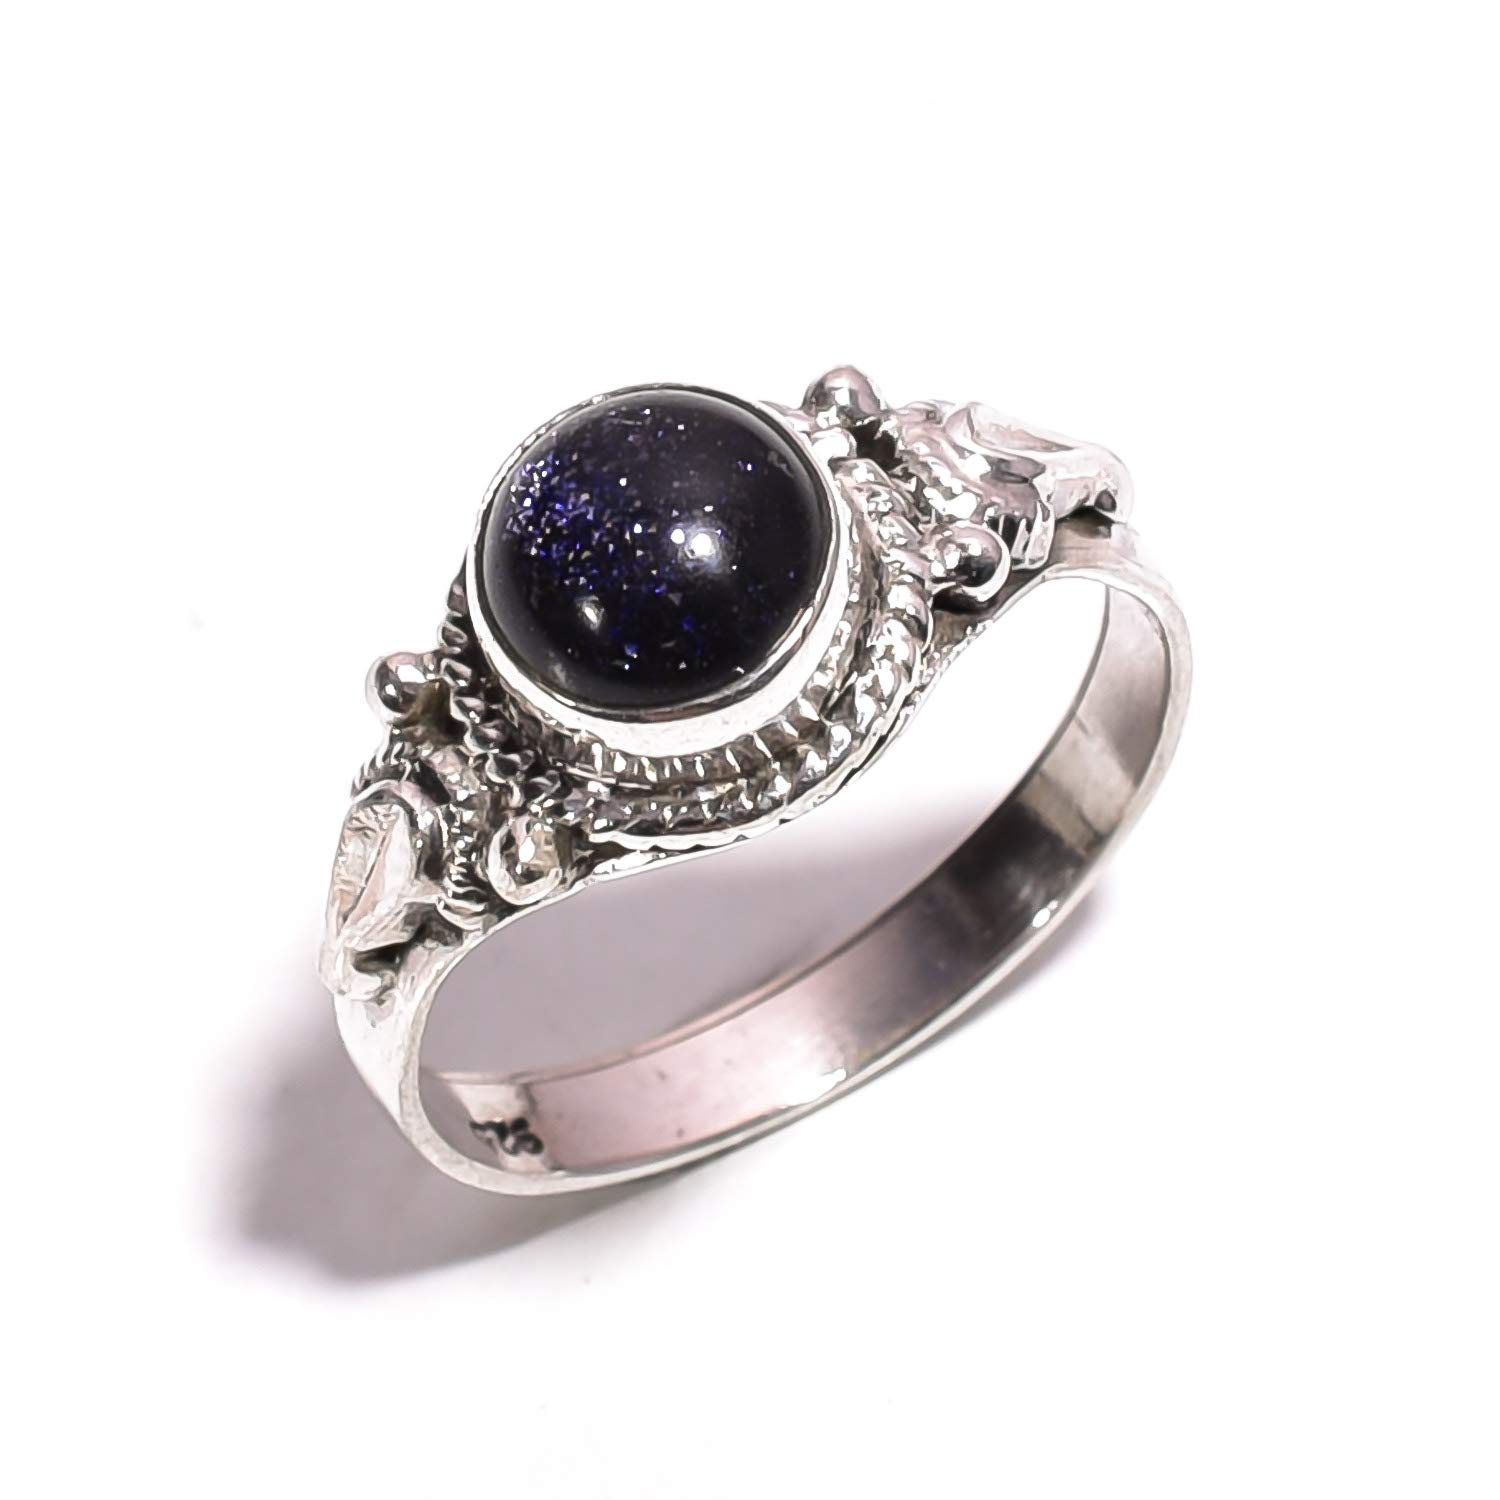 ZR-688 mughal gems /& jewellery 925 Sterling Silver Ring Natural Blue Sandstone Gemstone Fine Jewelry Ring for Women /& Girls 6.75 US Size